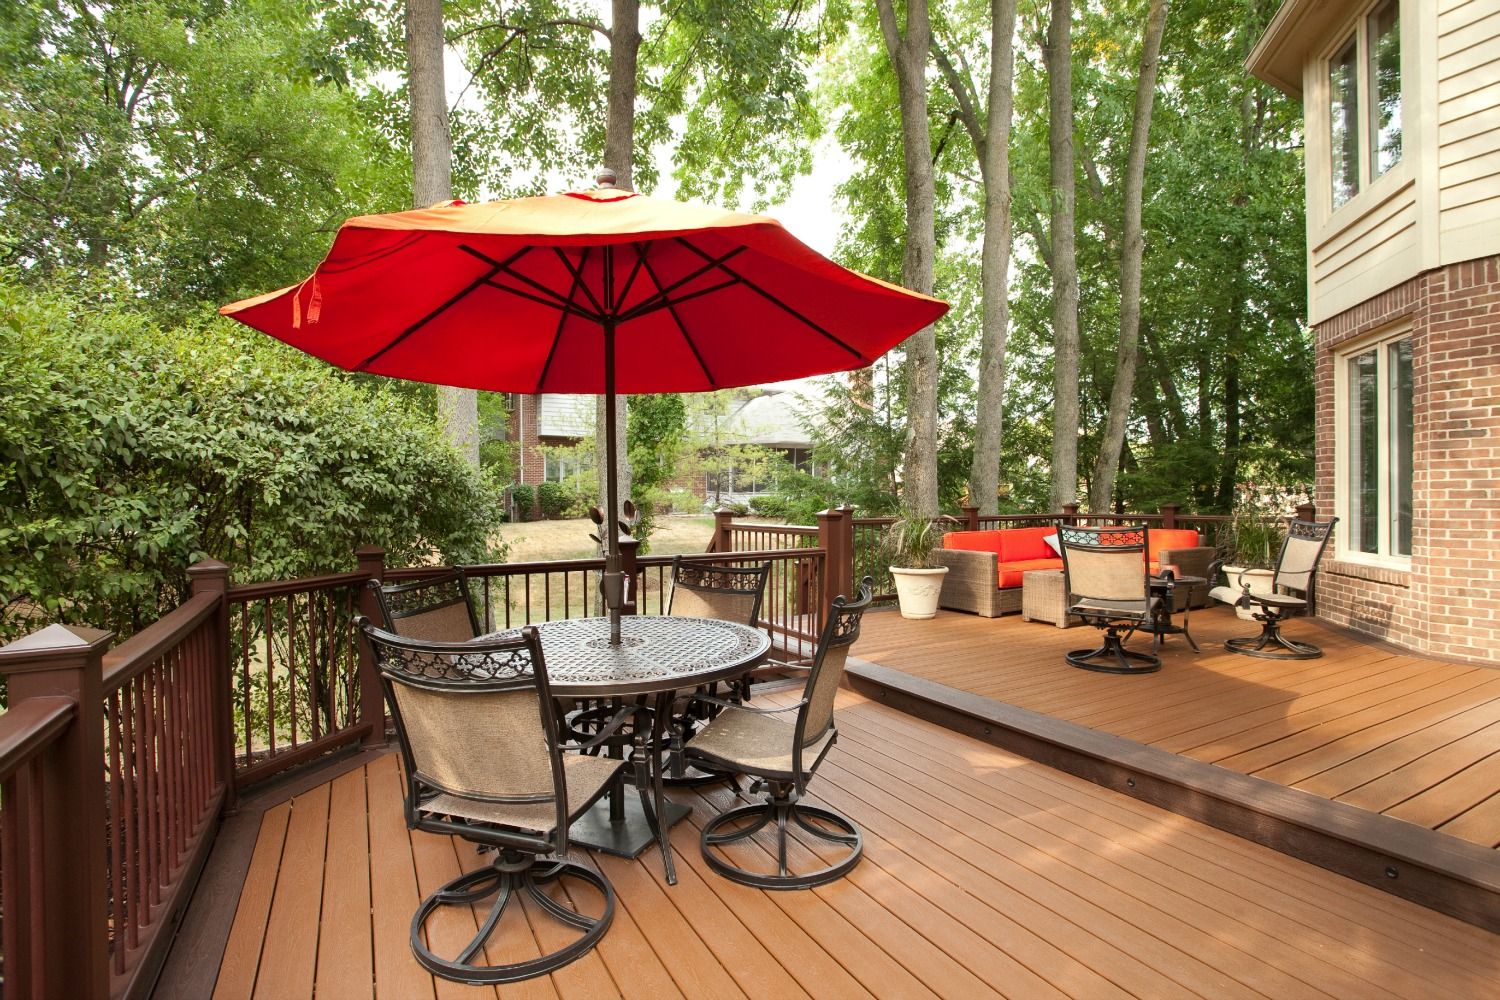 Modern Outside Decks For Outdoor Lounge : Outdoor Dining Set With Red Parasol Outstanding Outside Decks Design